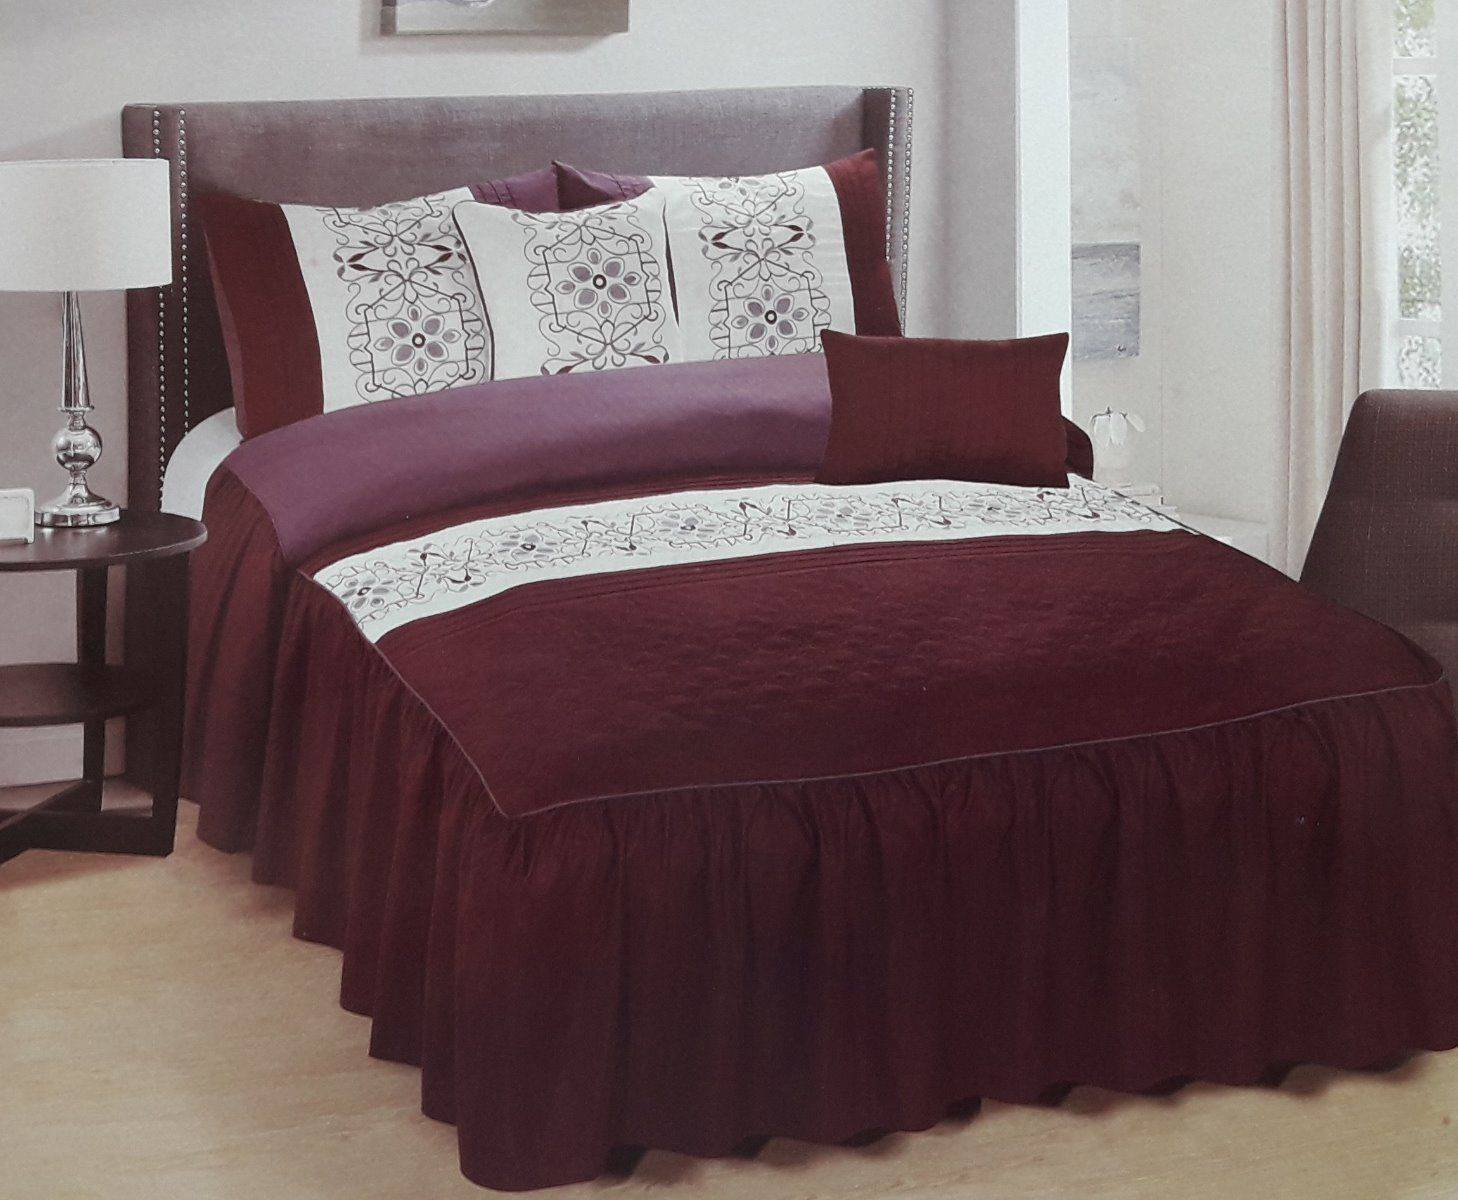 Private Collection 5 Pieces Luxury Embroidery Bedspread Set- Tursi